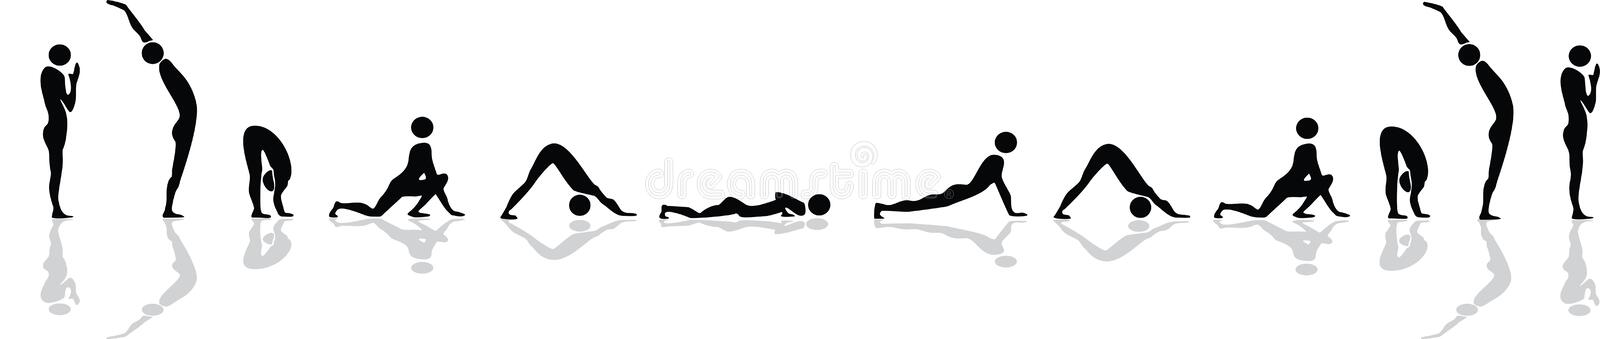 Download Yoga Position For Sun Salutation Royalty Free Stock Photo - Image: 20792875